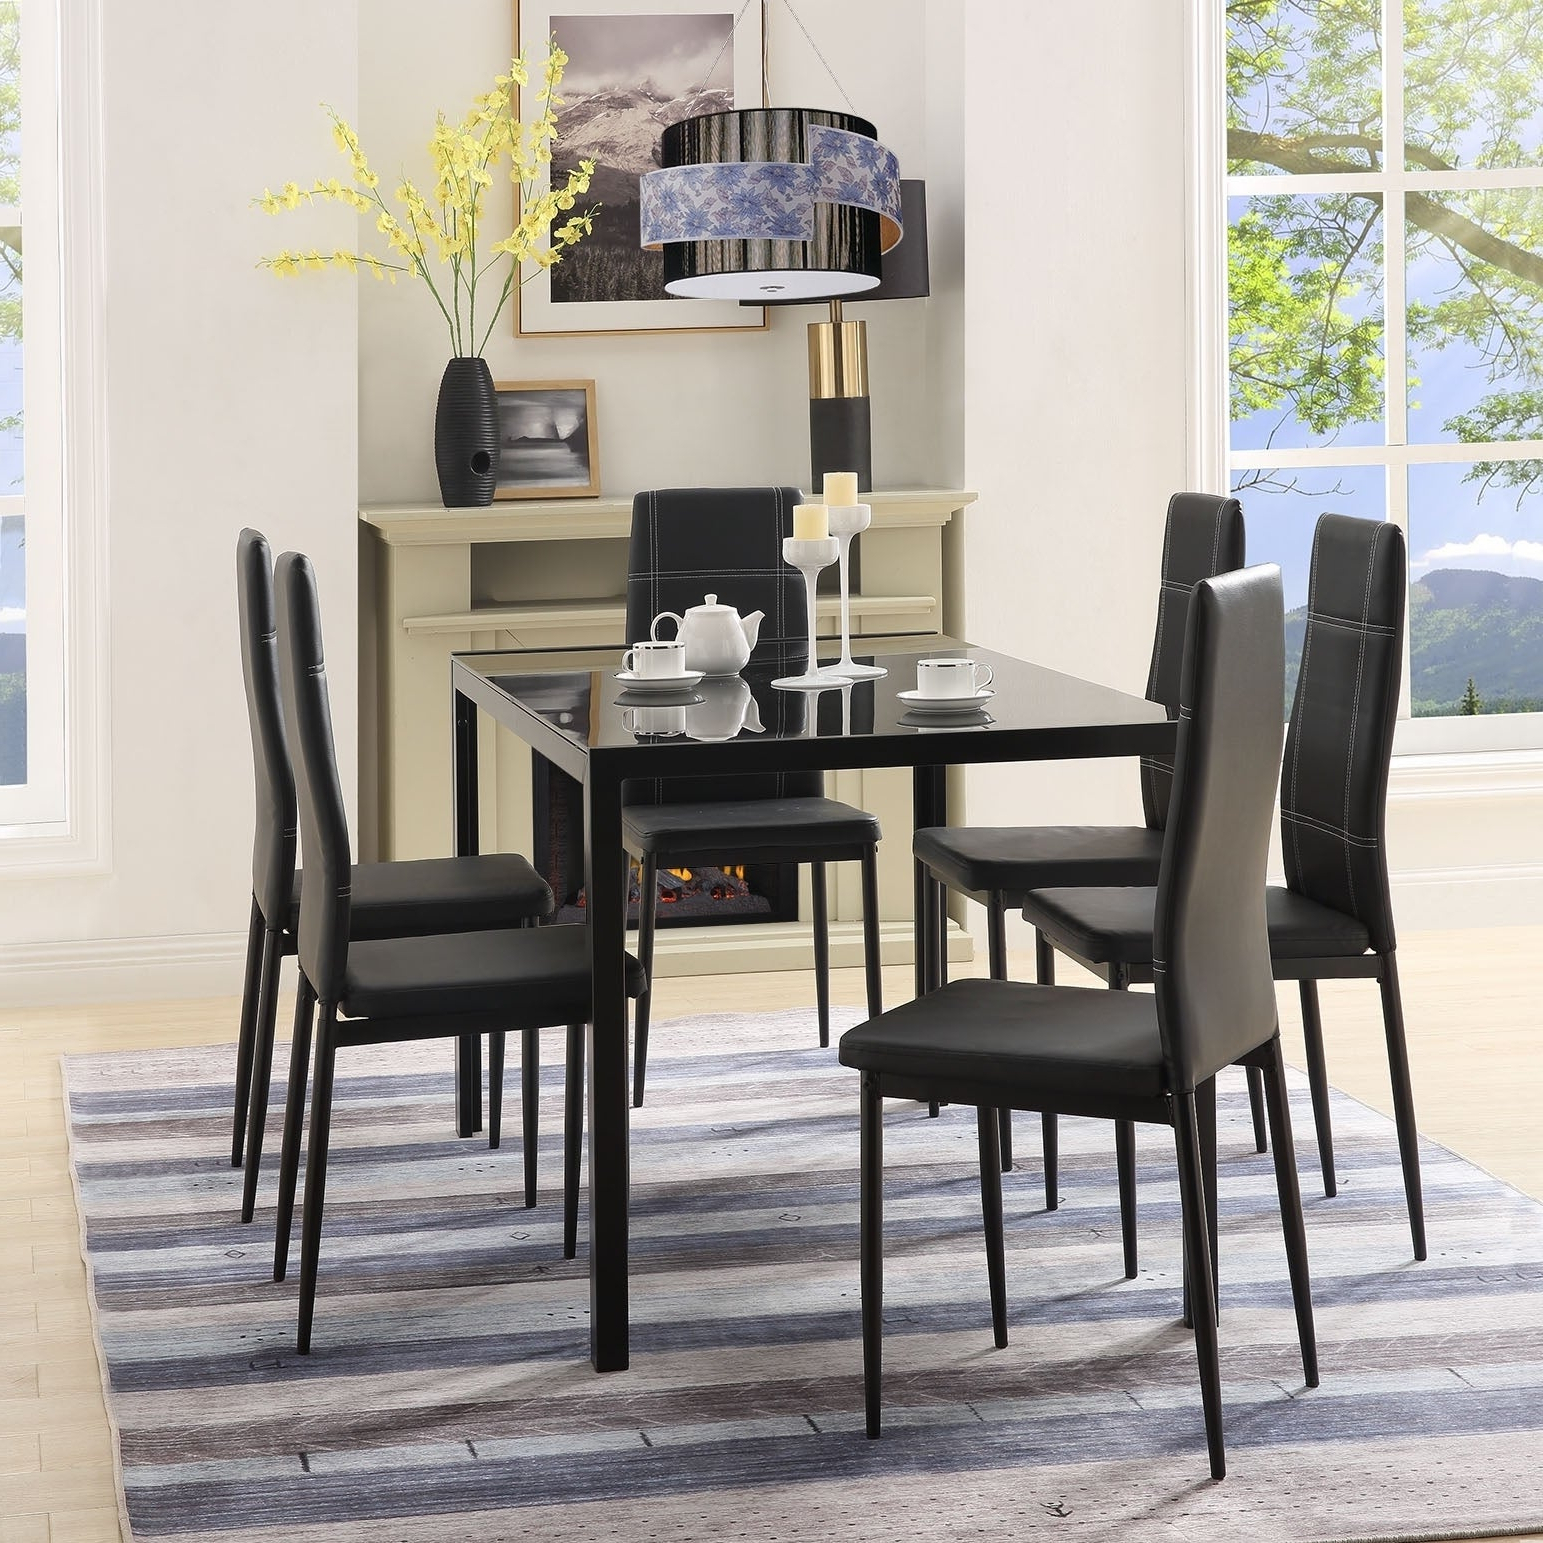 Newest Maynard 5 Piece Dining Sets In Merax 7 Piece Dining Set Glass Top Metal Table 6 Person Table And Chairs (Gallery 12 of 20)